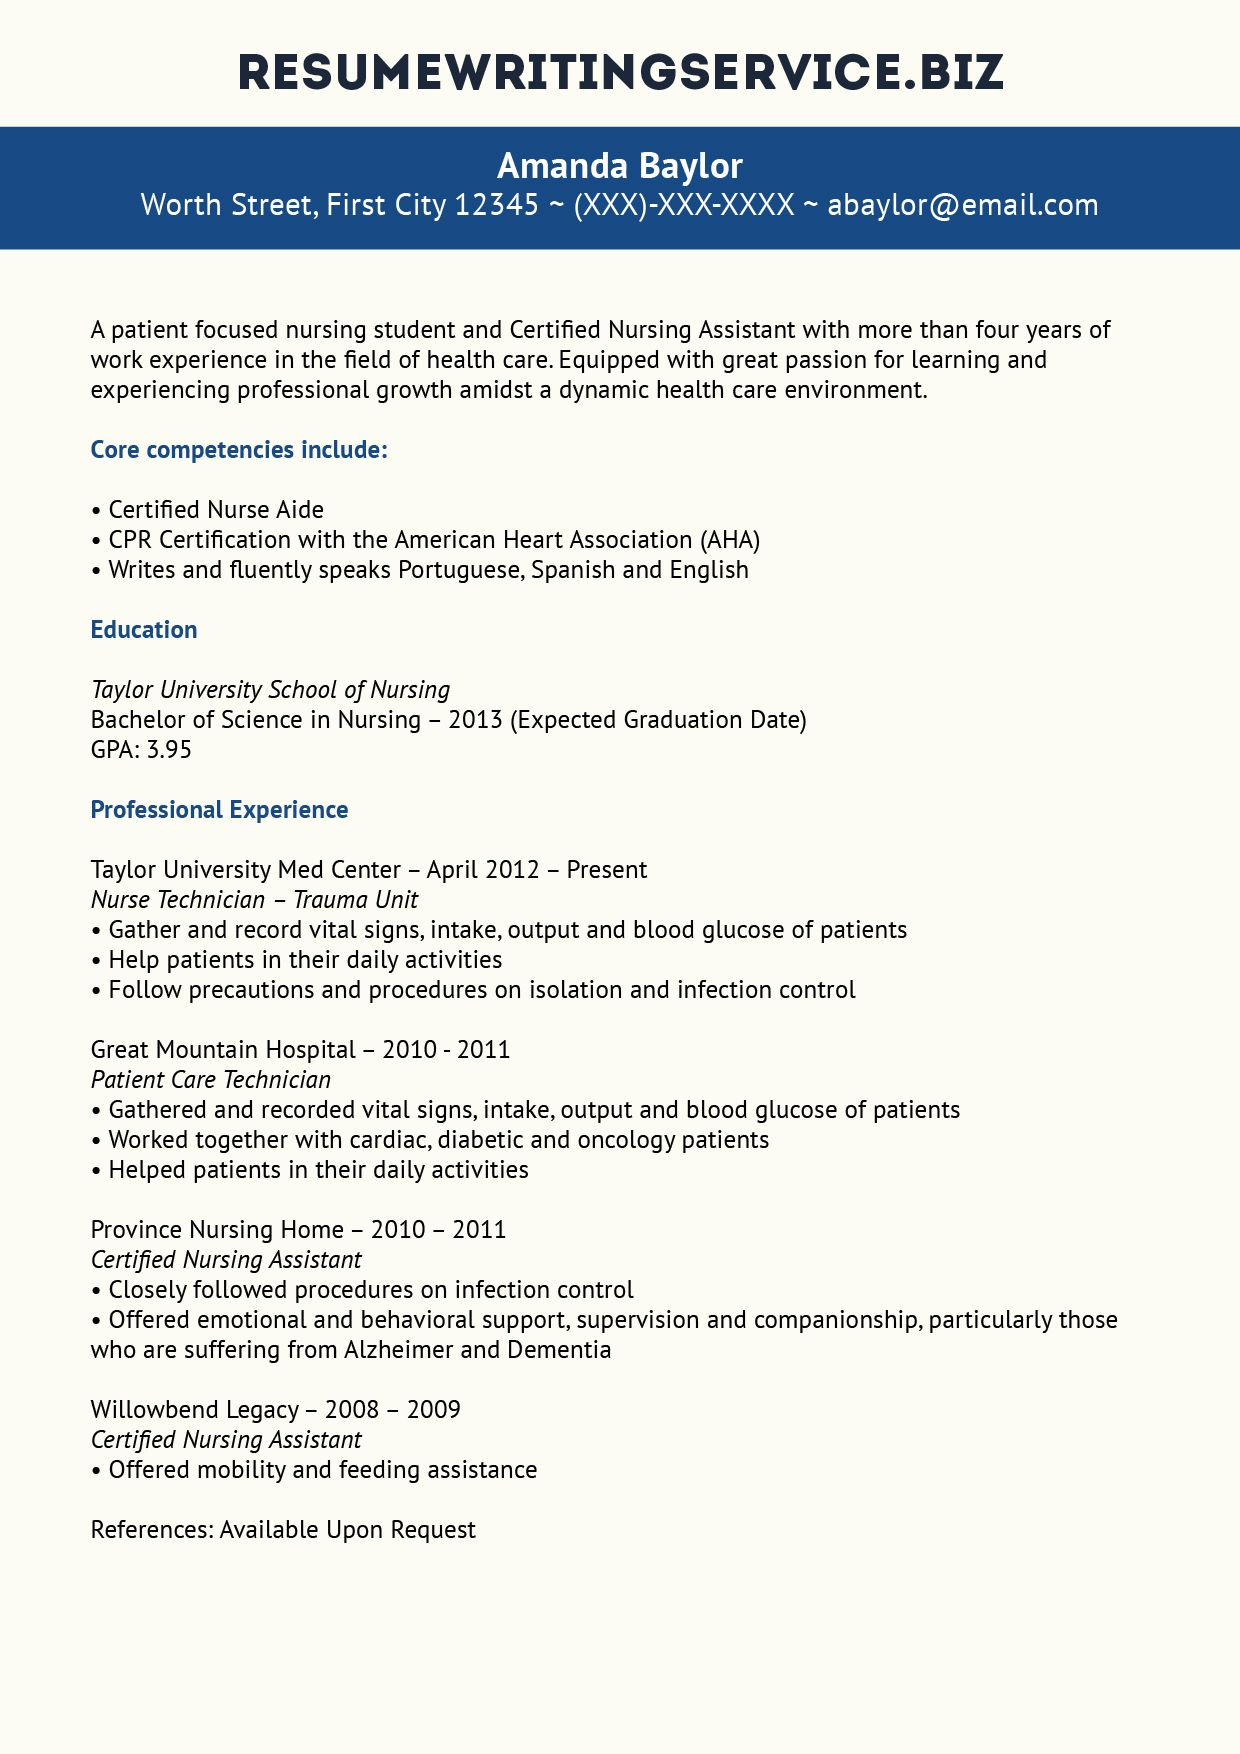 Sample Resume For Nursing Student Glamorous Nursing Student Resume Sample  Studentcareer  Pinterest  Student .